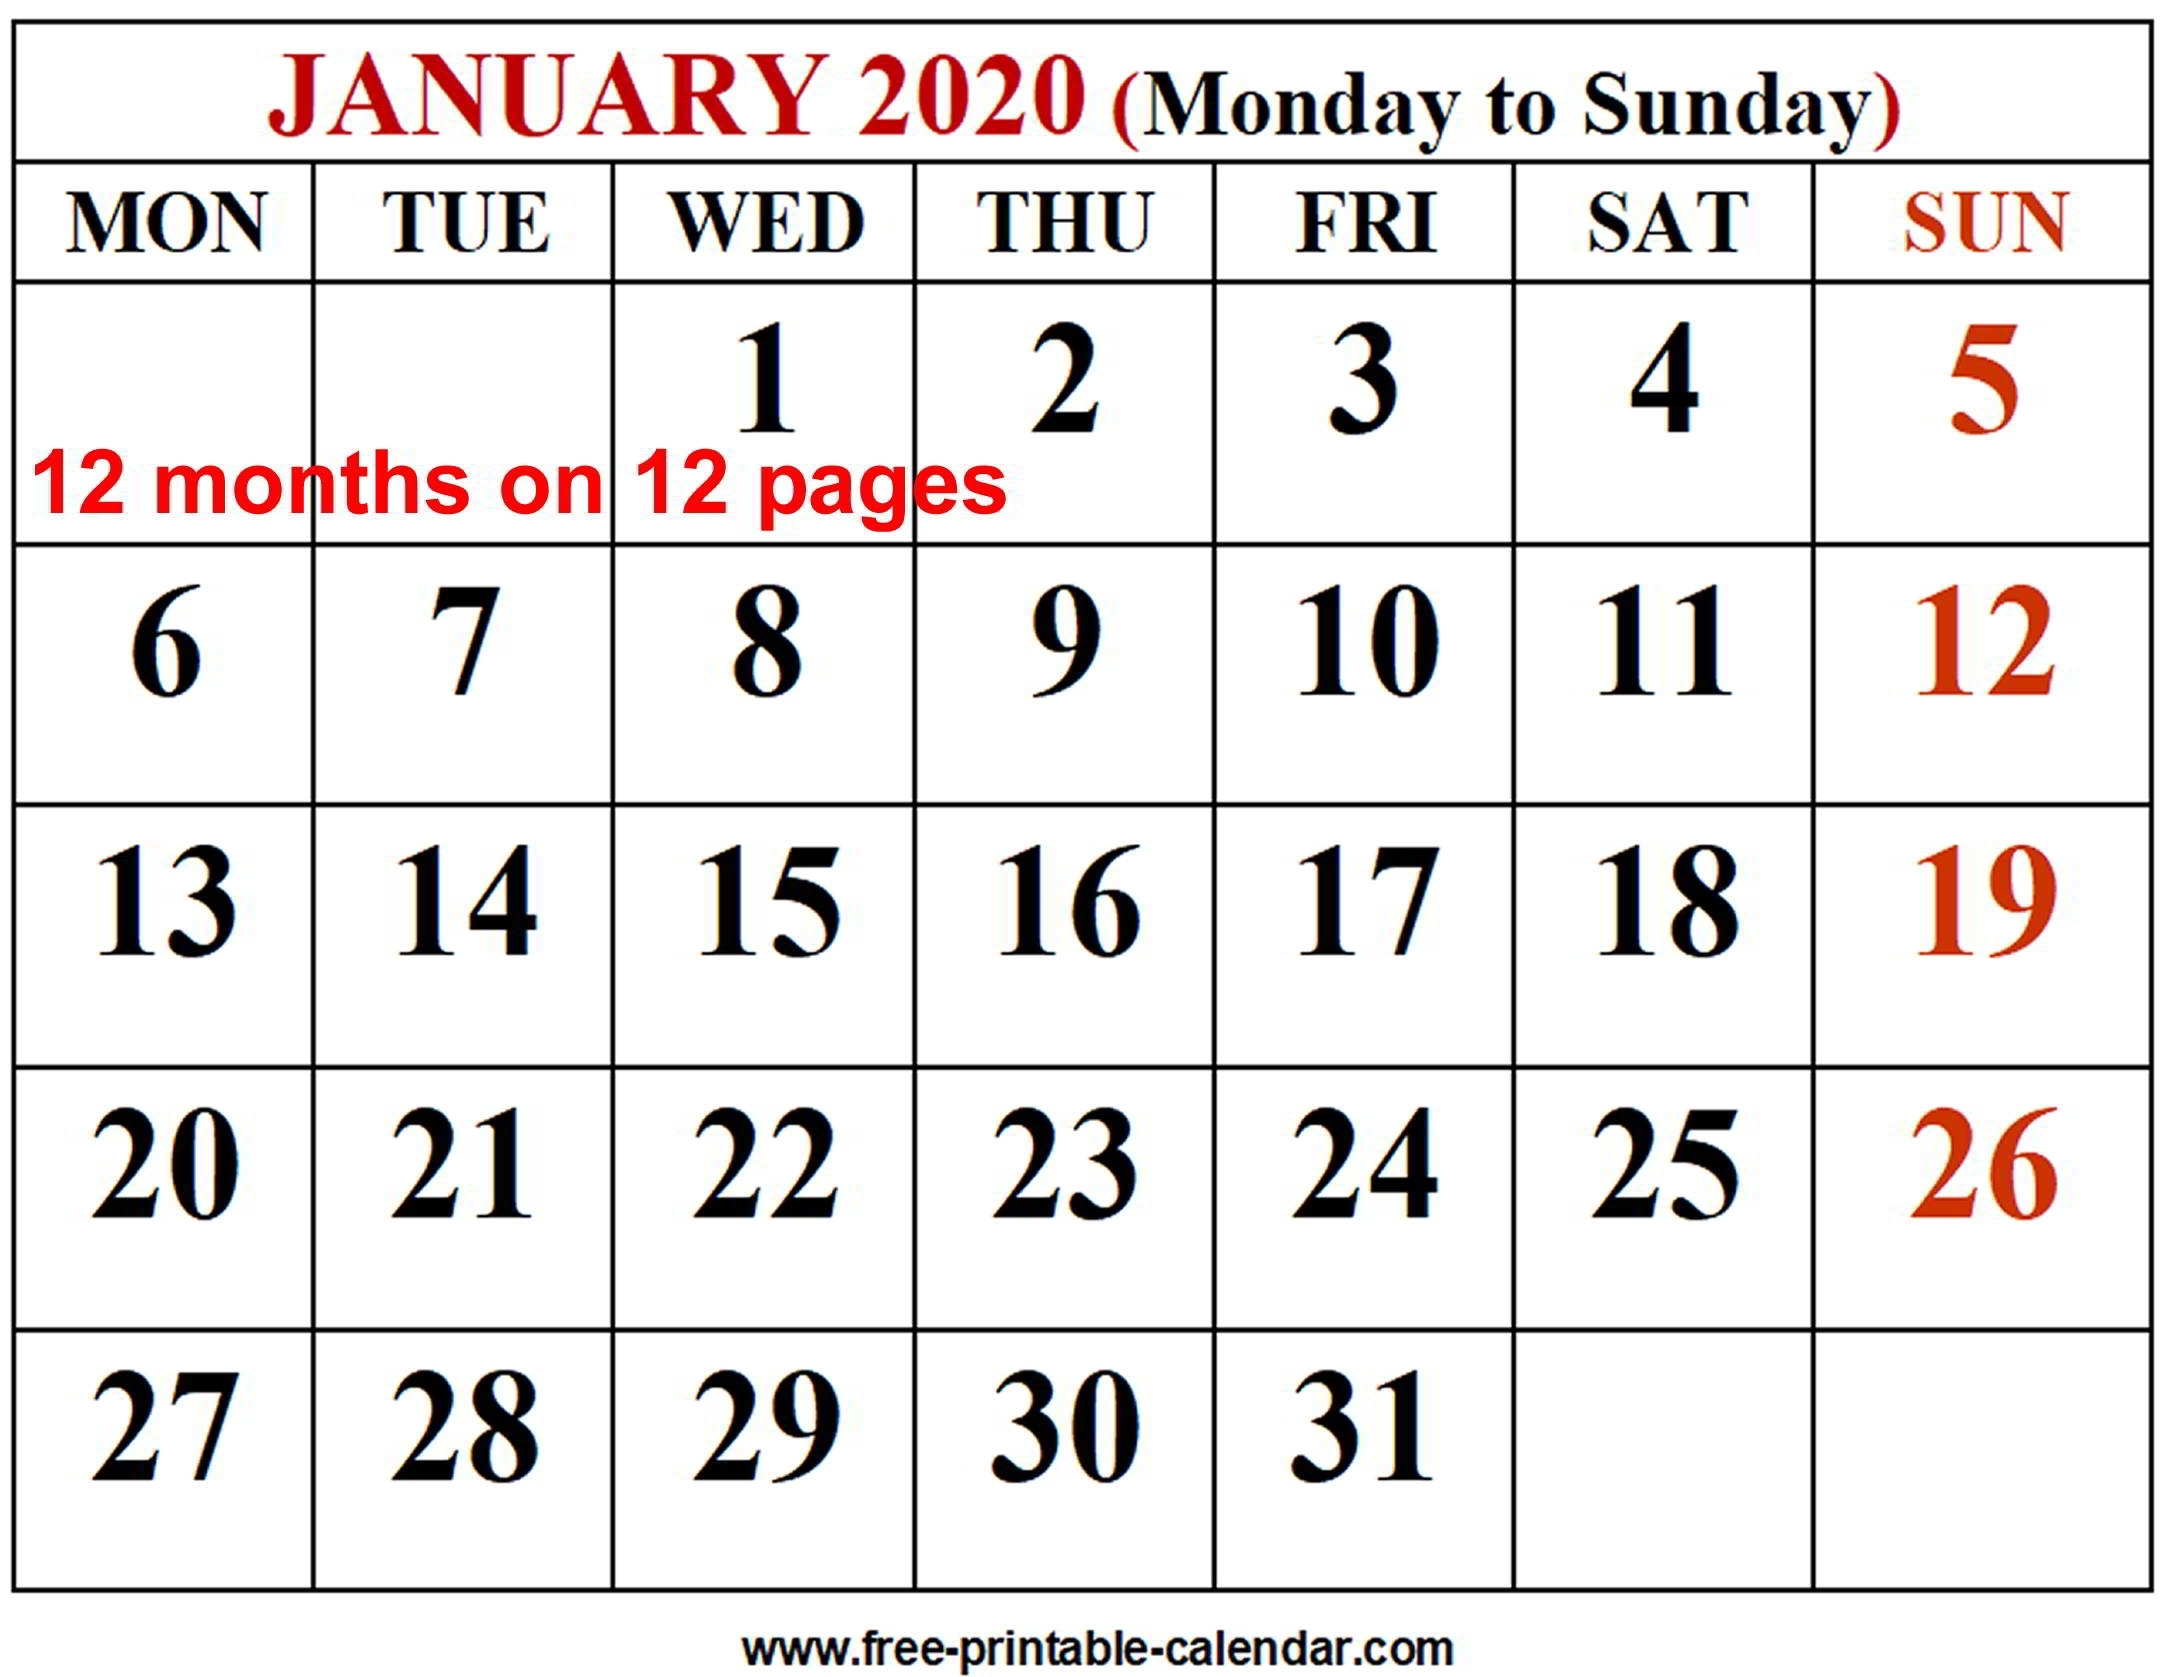 2020 Calendar Template - Free-Printable-Calendar pertaining to 2020 Calendar Print Mon To Sunday